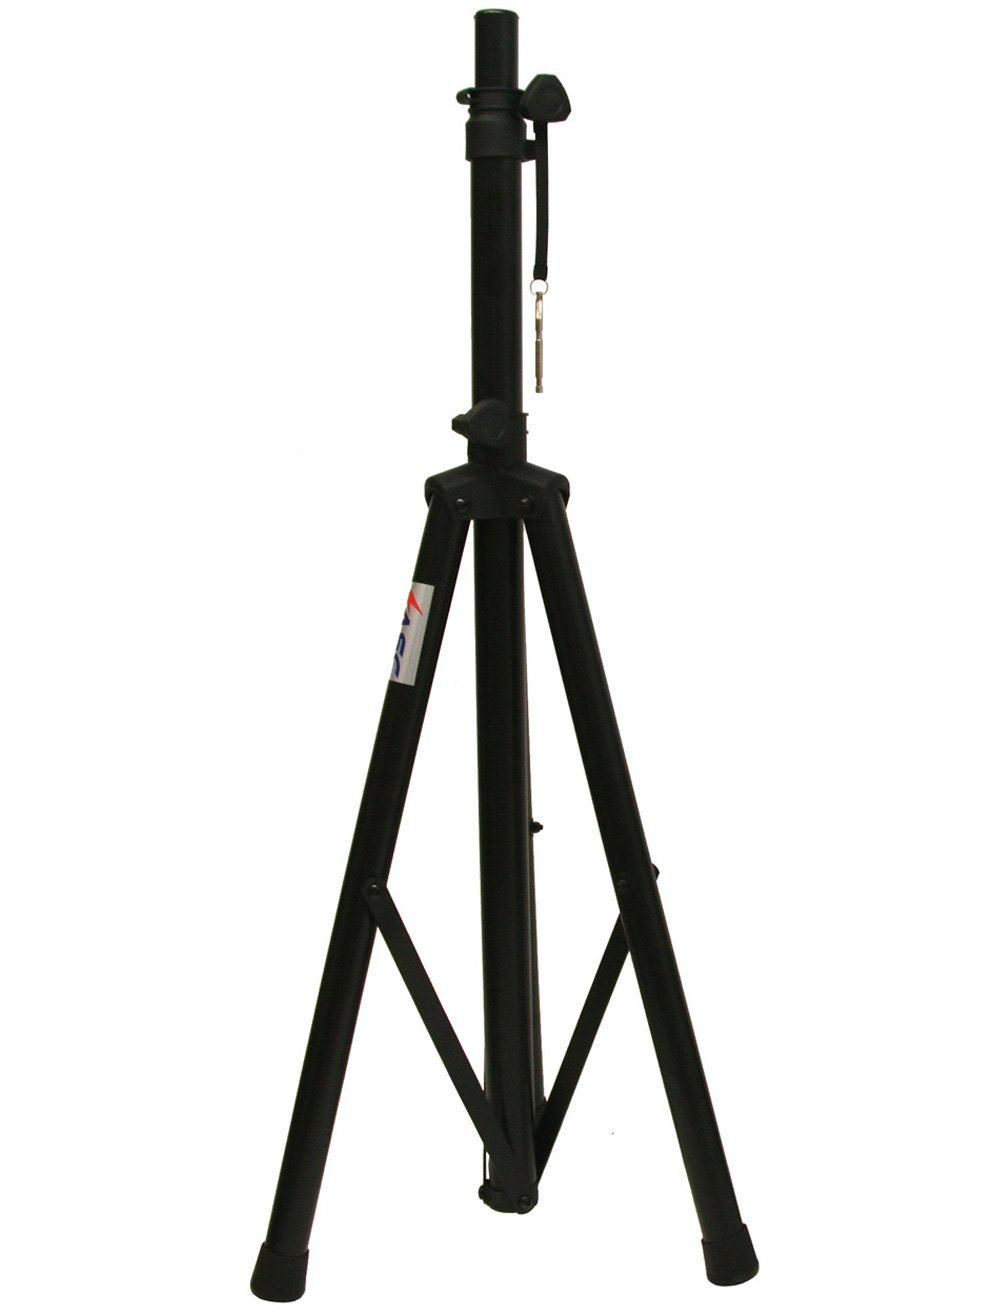 ASC Pro Audio Mobile DJ PA Speaker Stand Lighting 6 Foot Adjustable Height Tripod by American Sound Connection